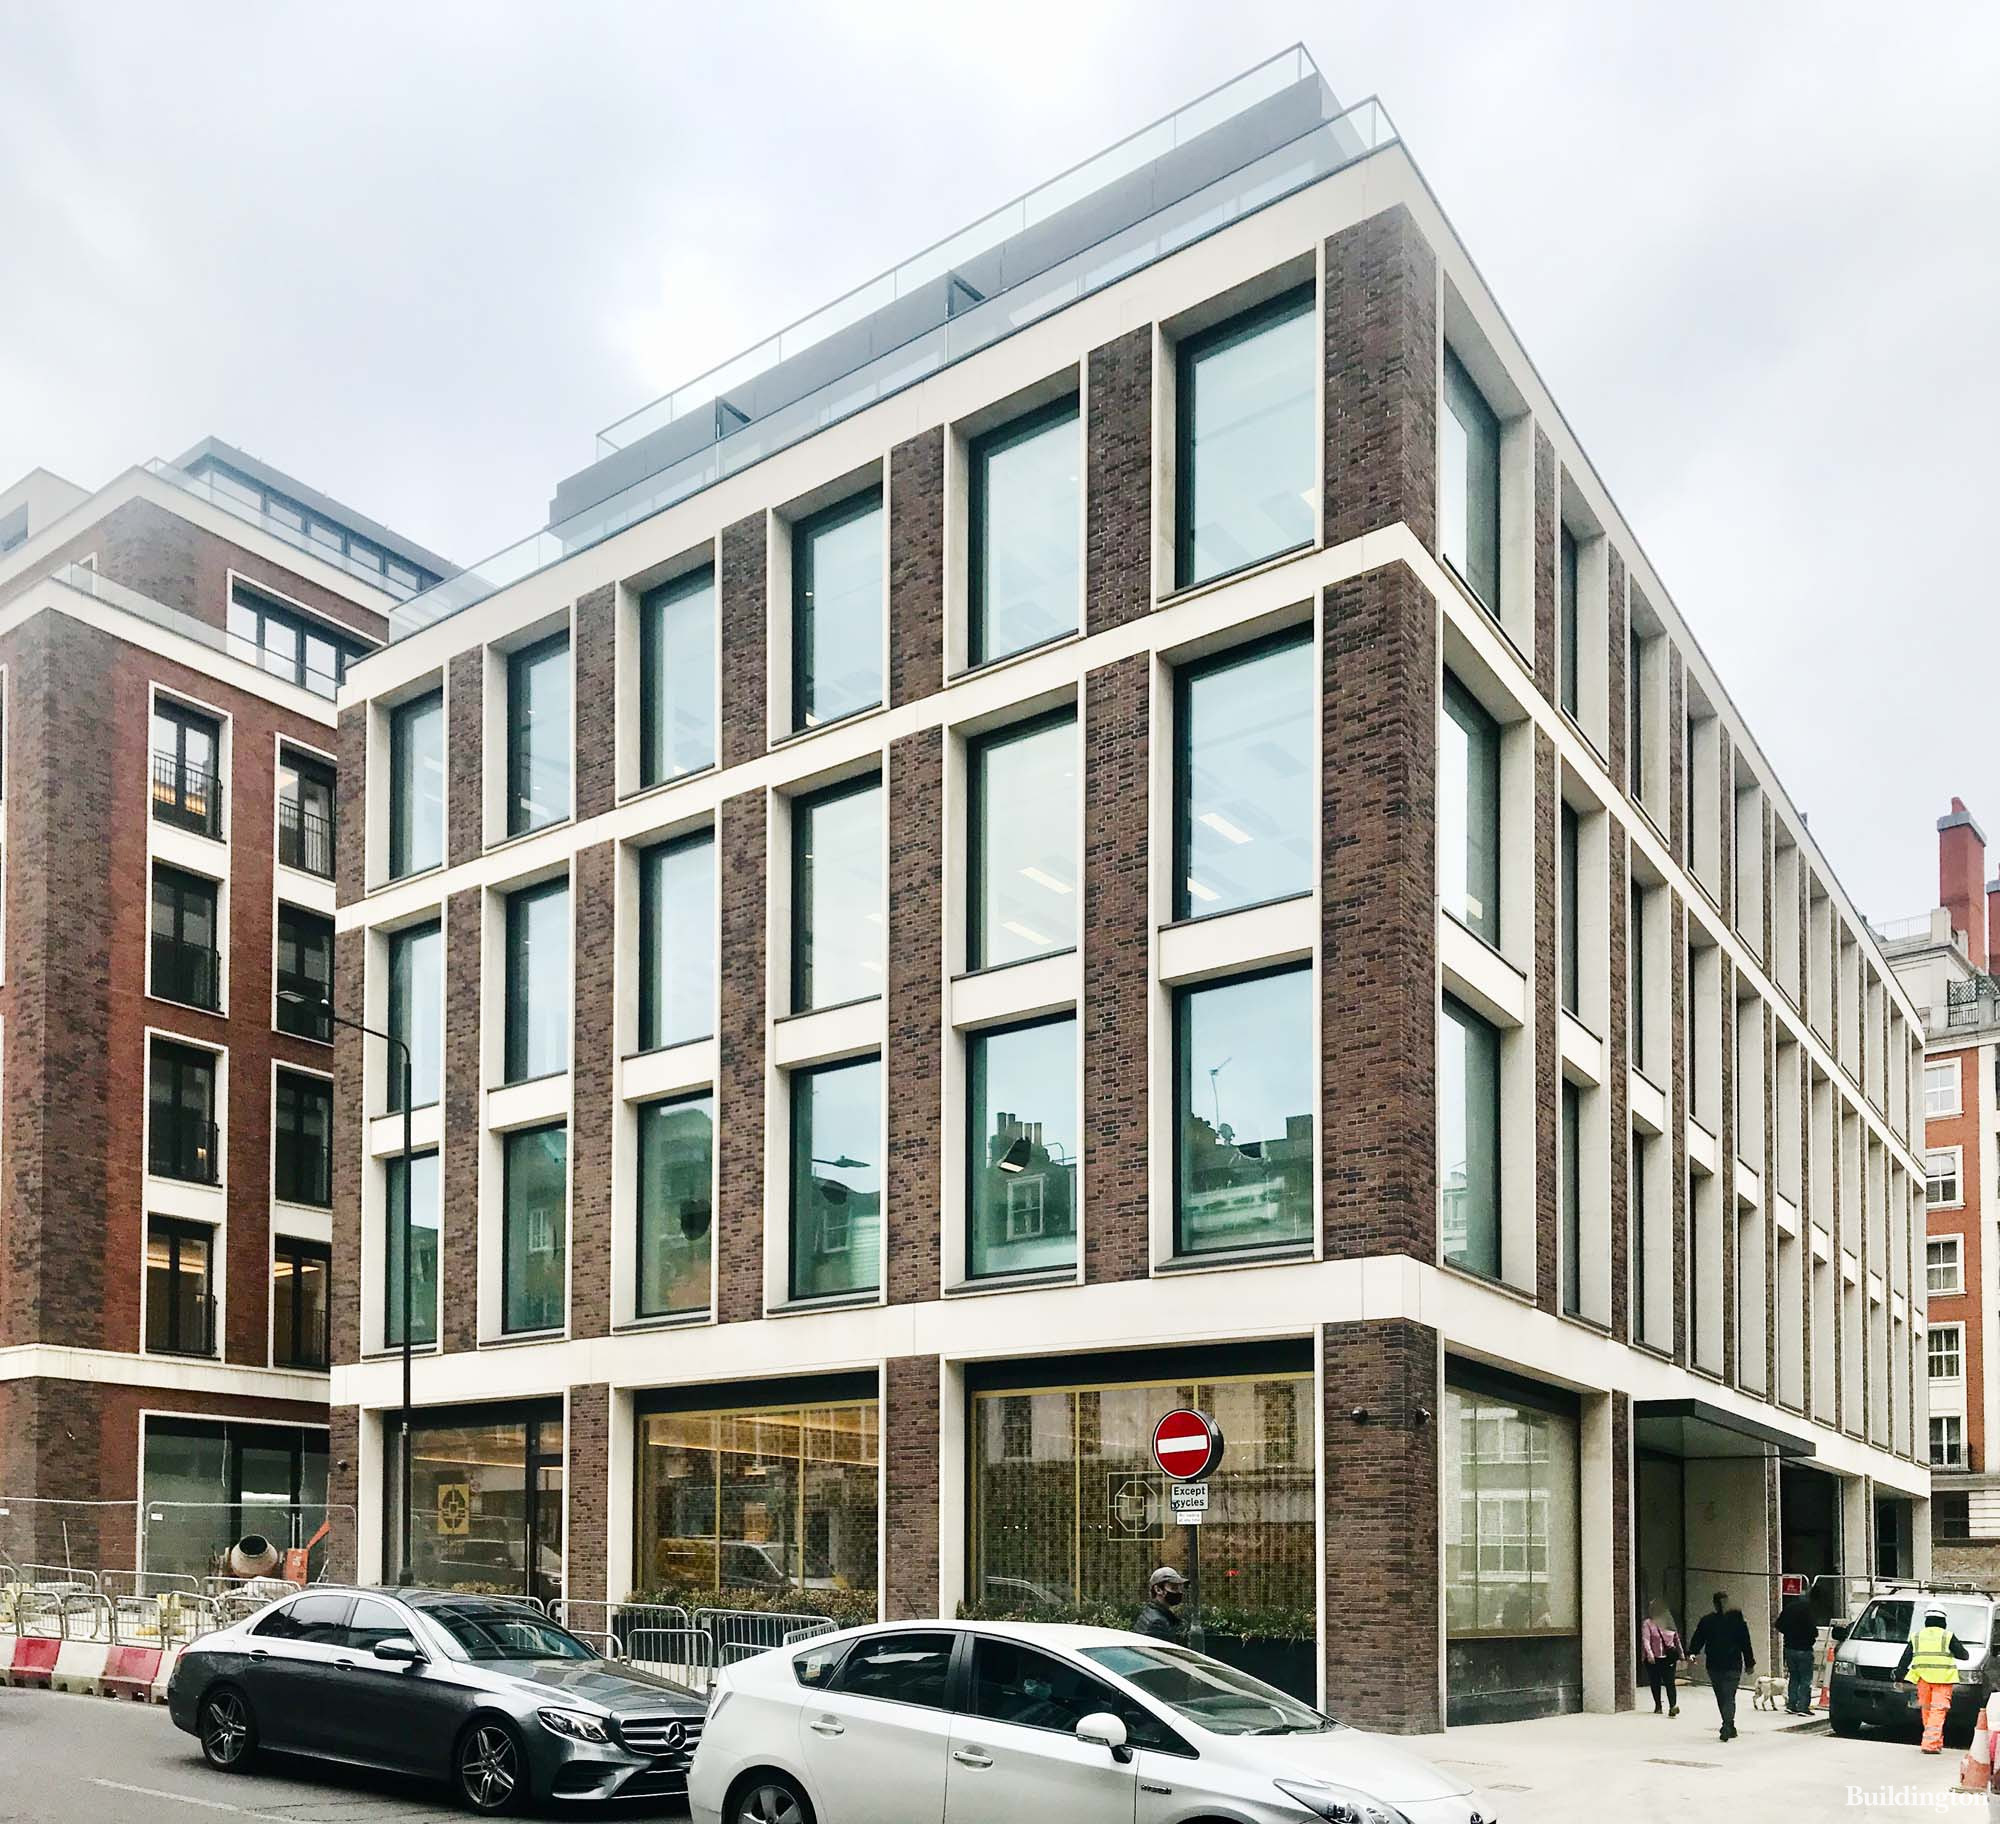 Lancer Square development on Kensington Church Street in London W8.